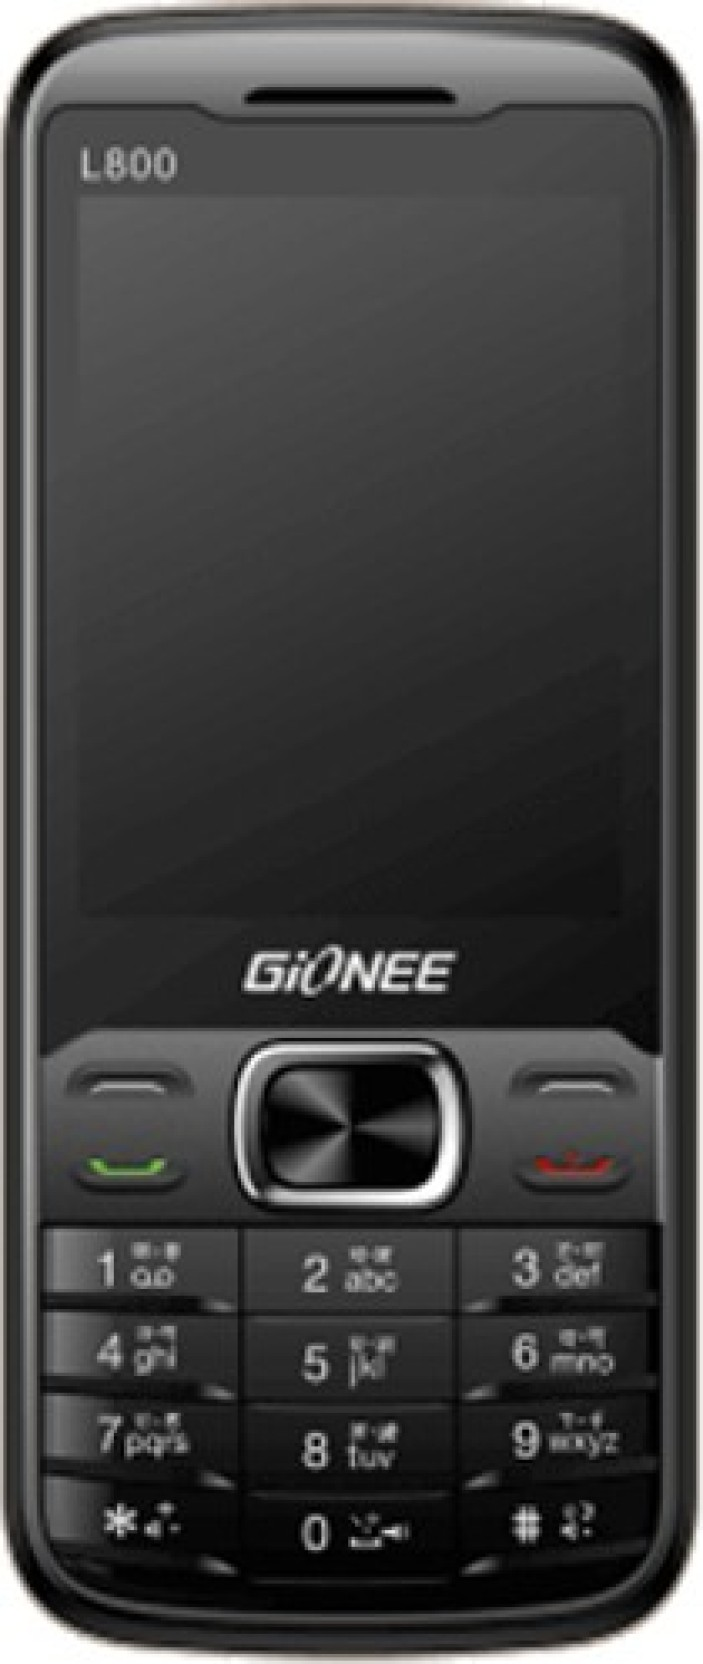 Gionee L800 Online At Best Price With Great Offers Only On